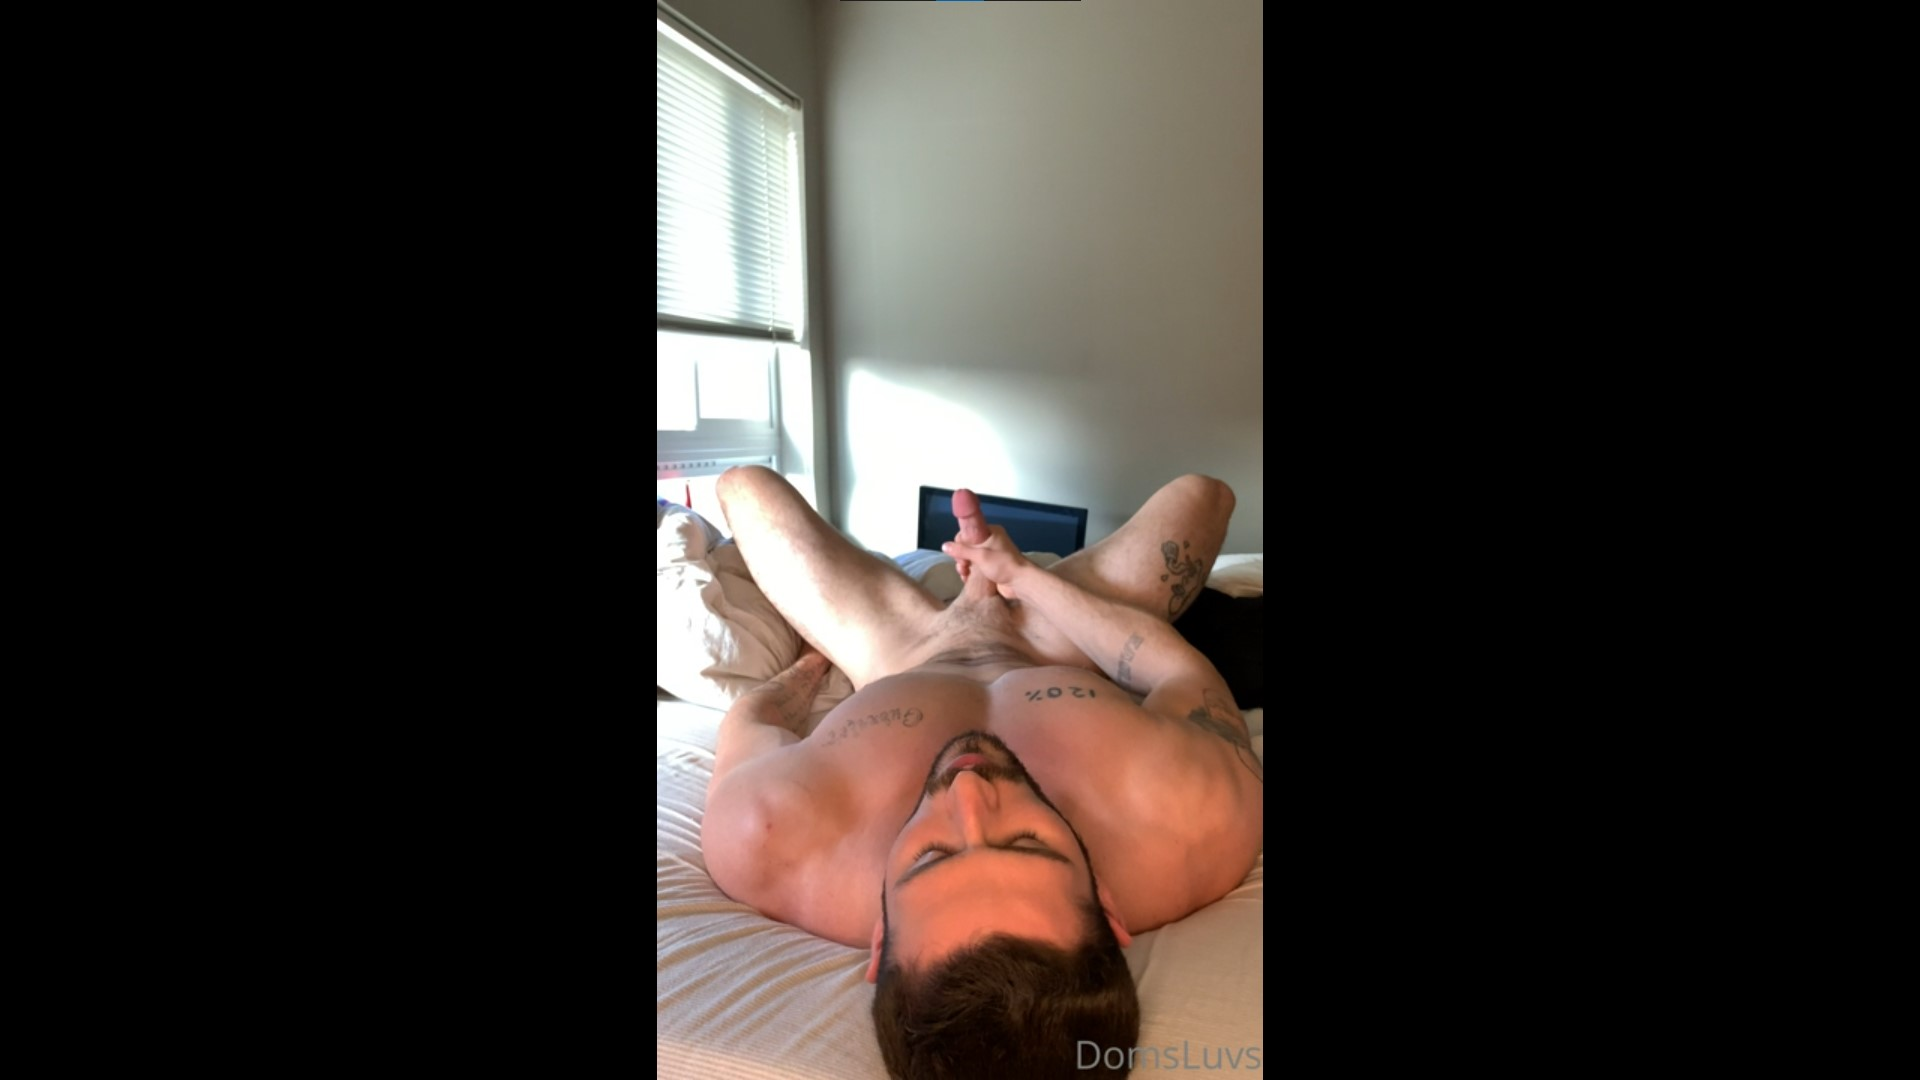 Quickly shooting a load over my body - domsluvz